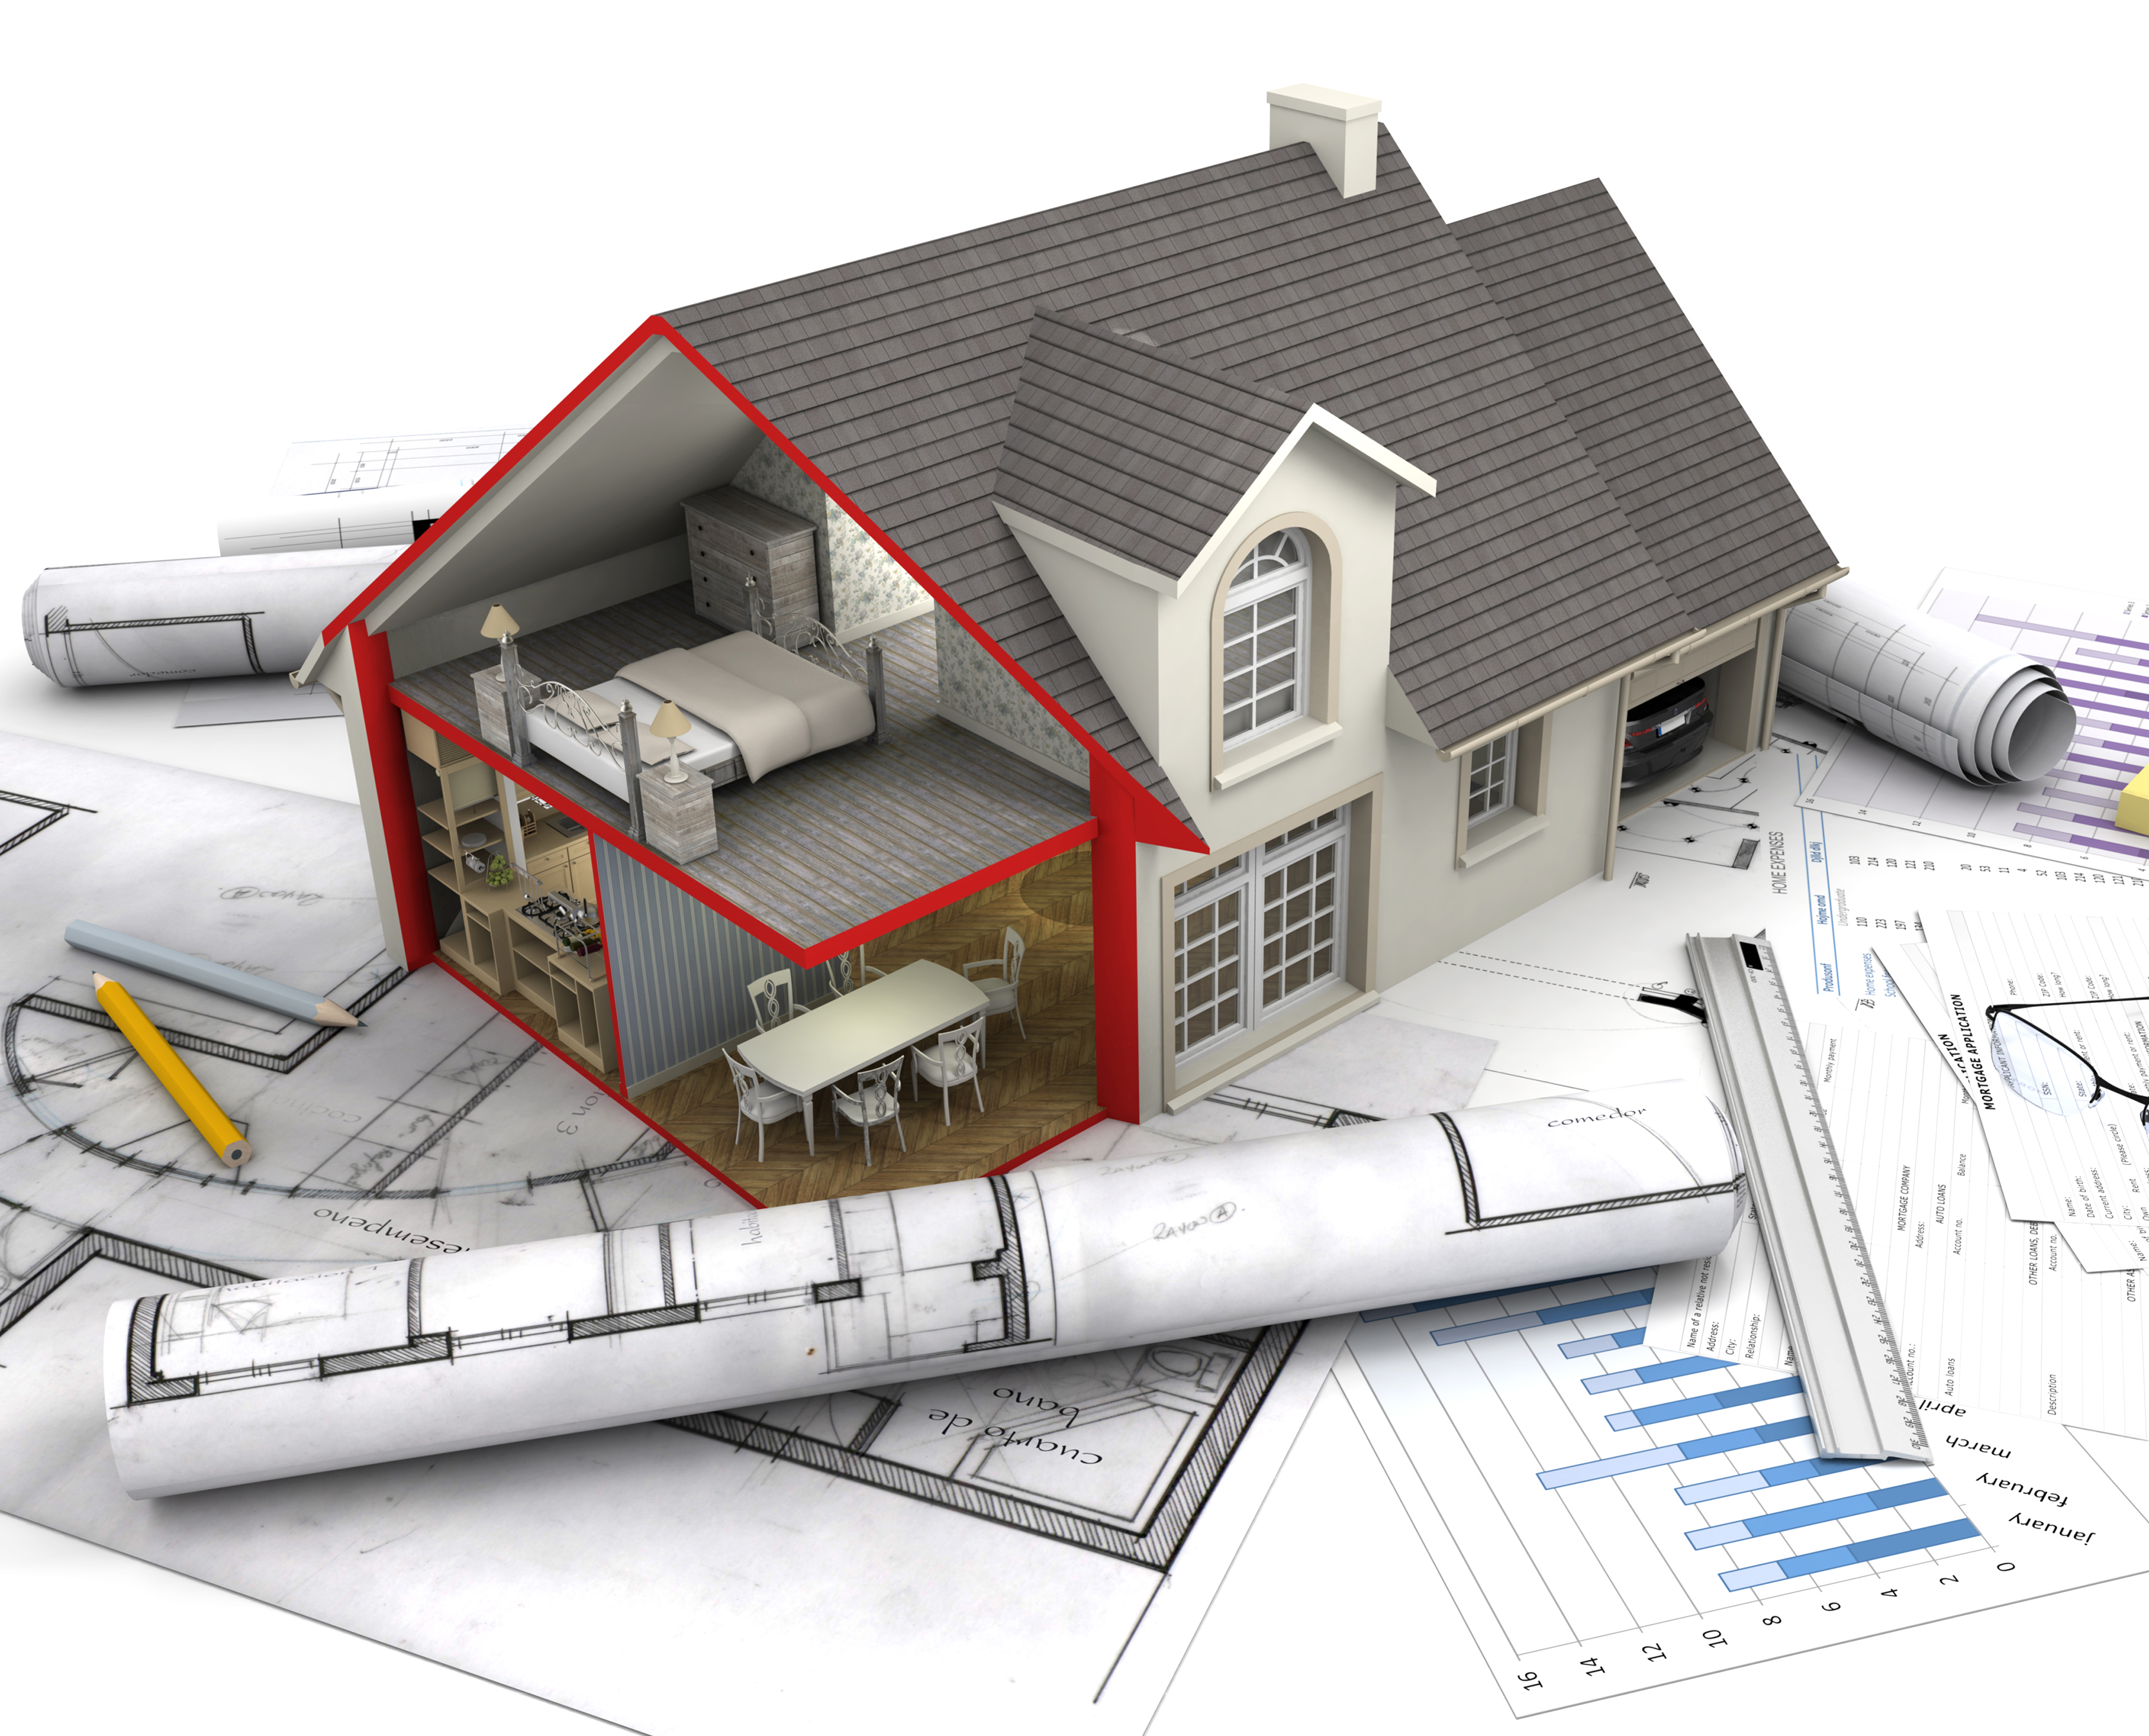 Construction Renovation Loan Calculator Home Renovation Projects